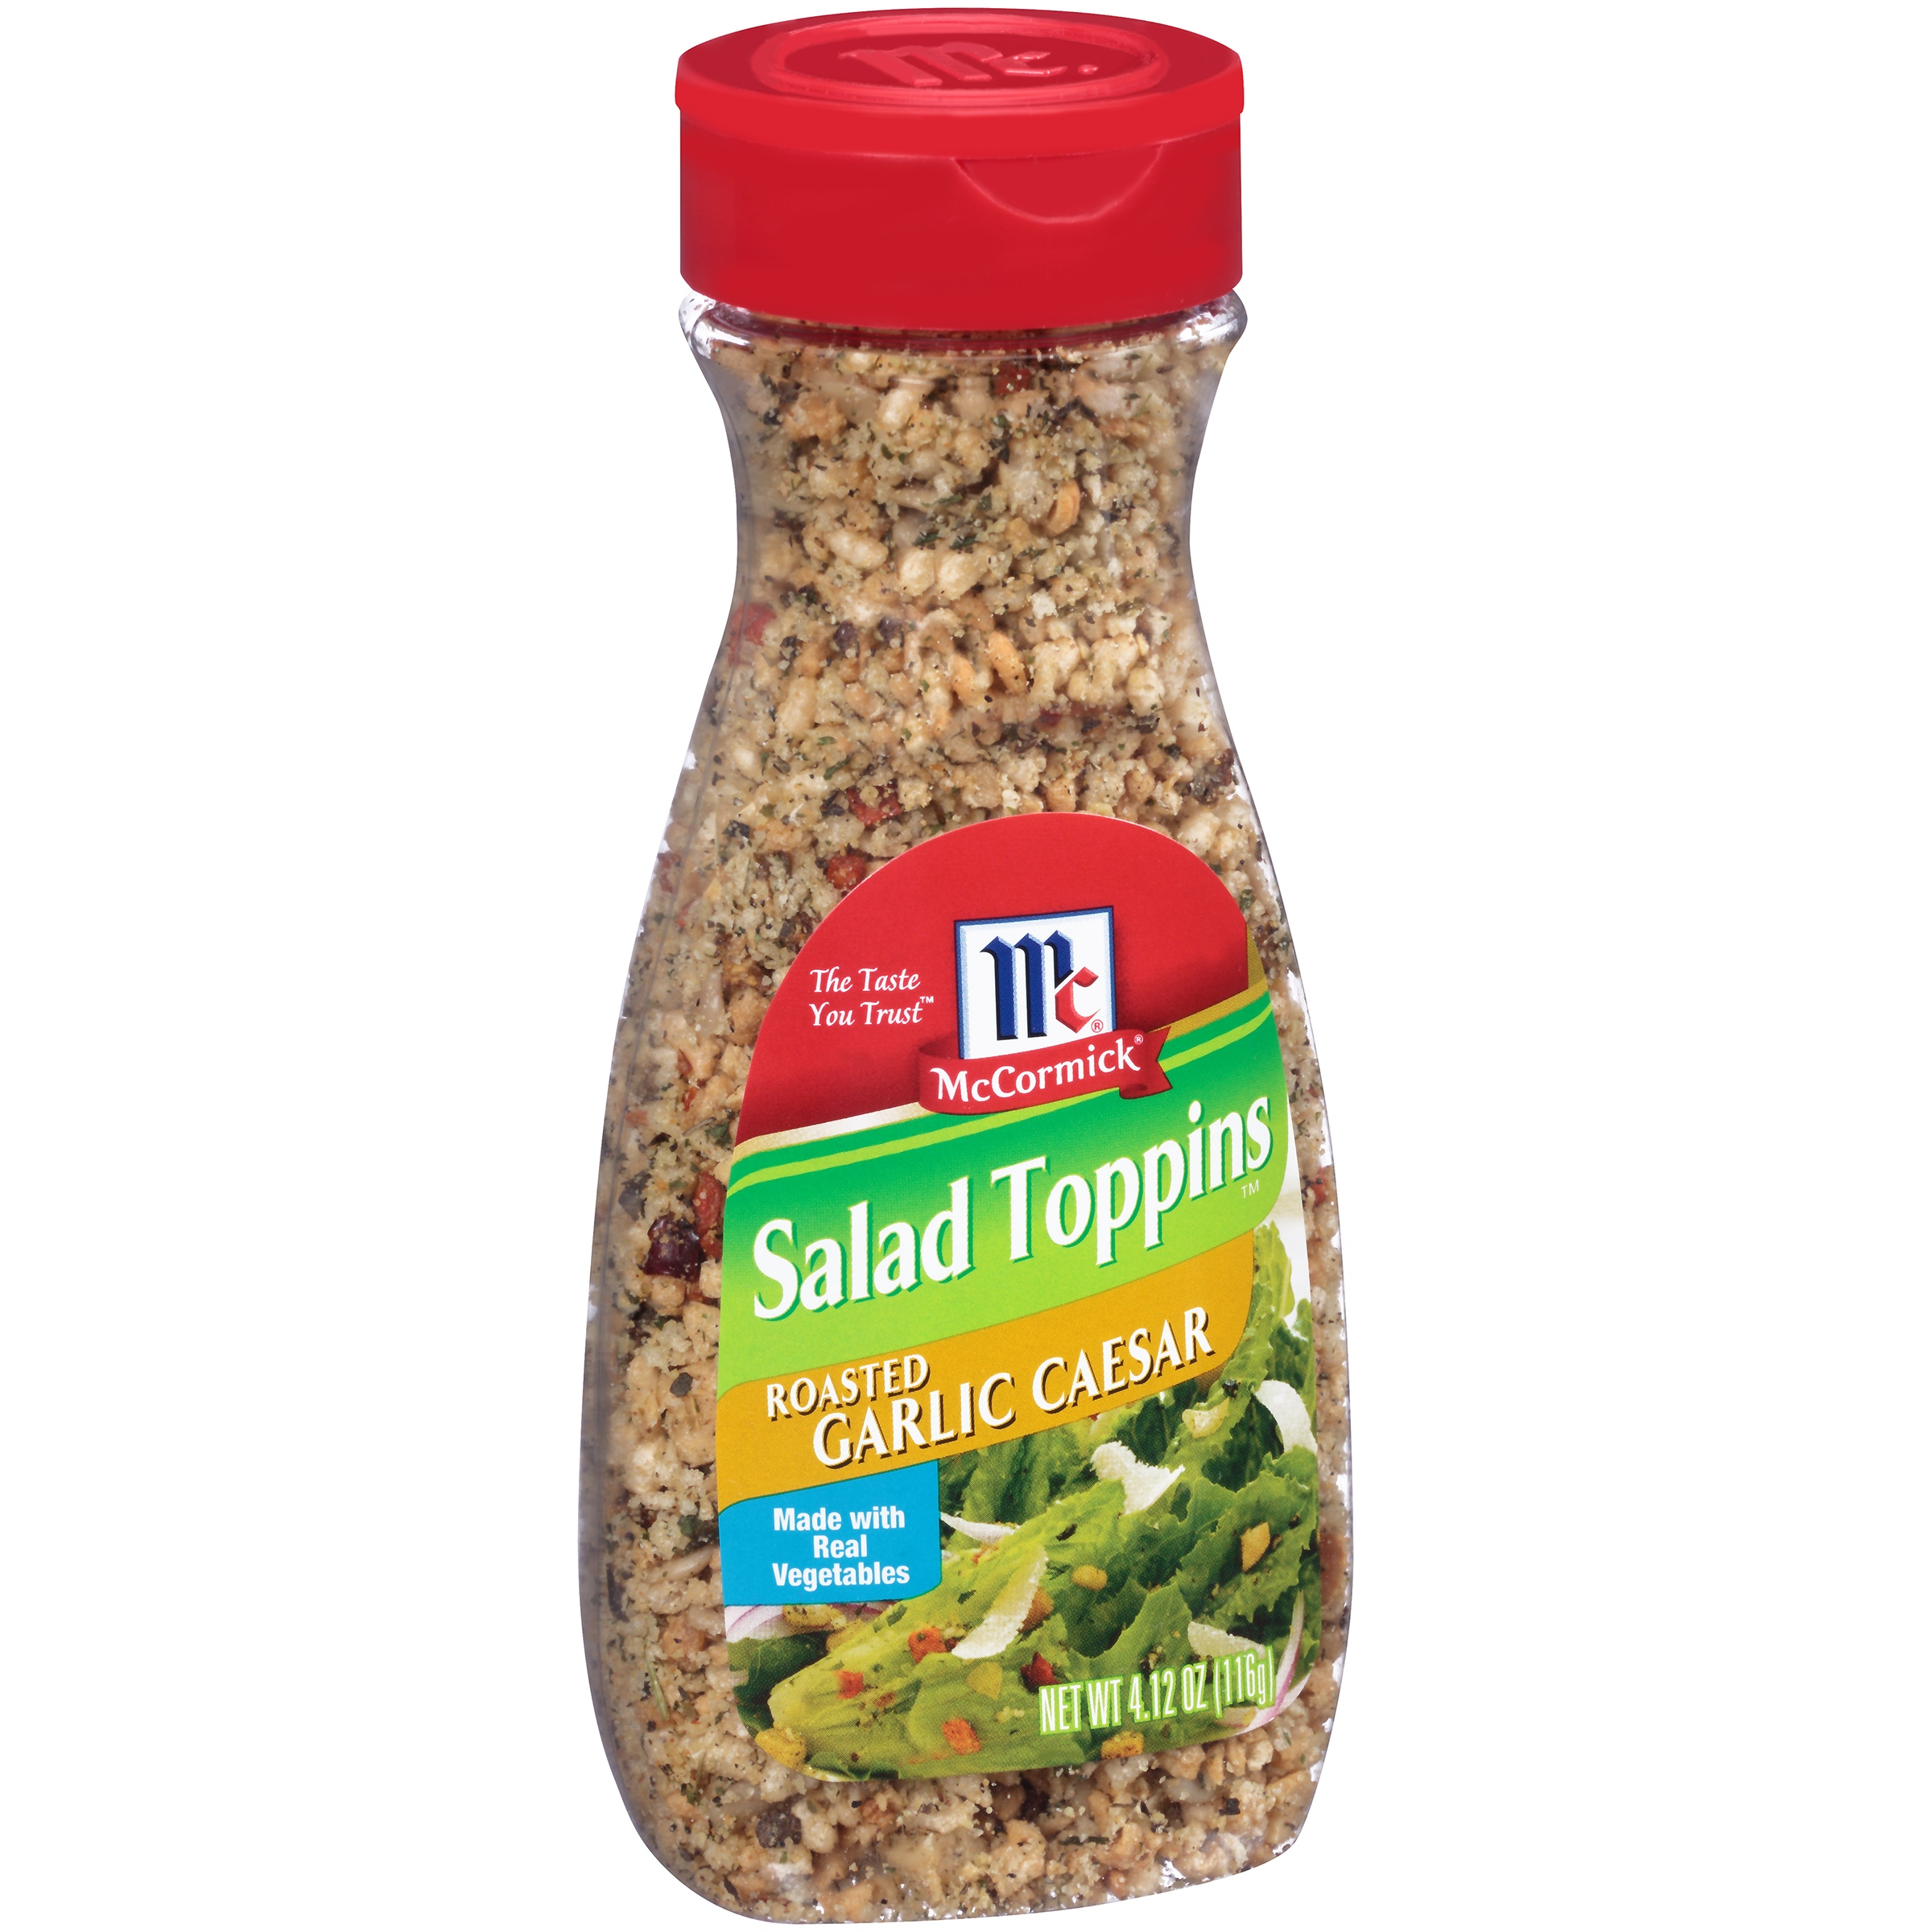 McCormick Salad Toppins Roasted Garlic Caesar, 4.12 OZ